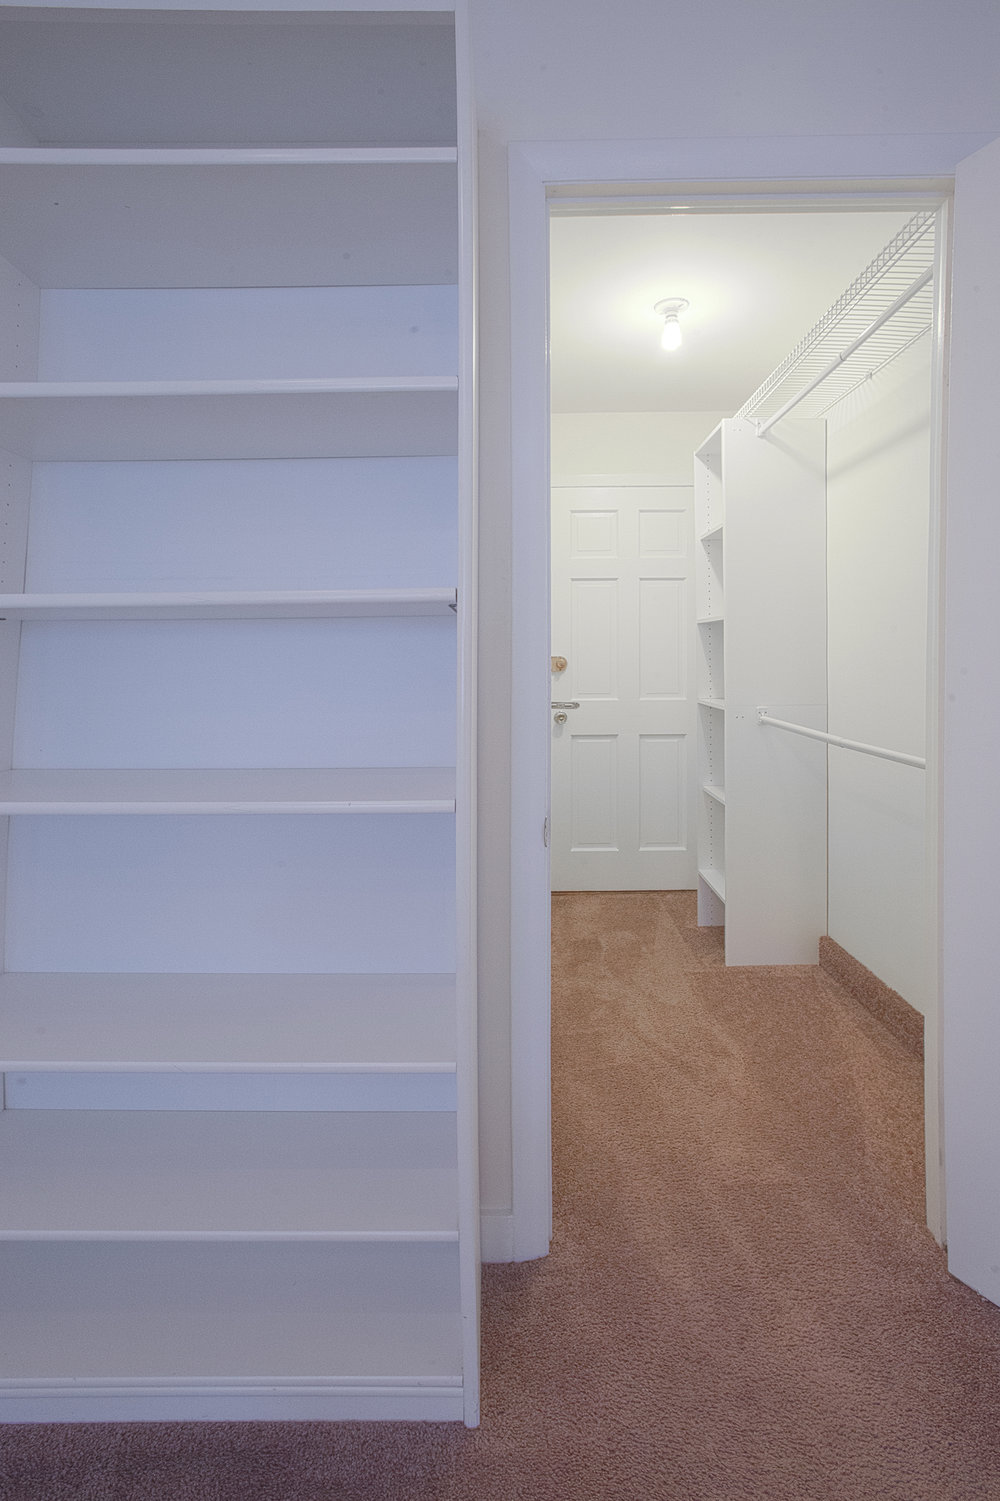 Unit 1 Bedroom Closet